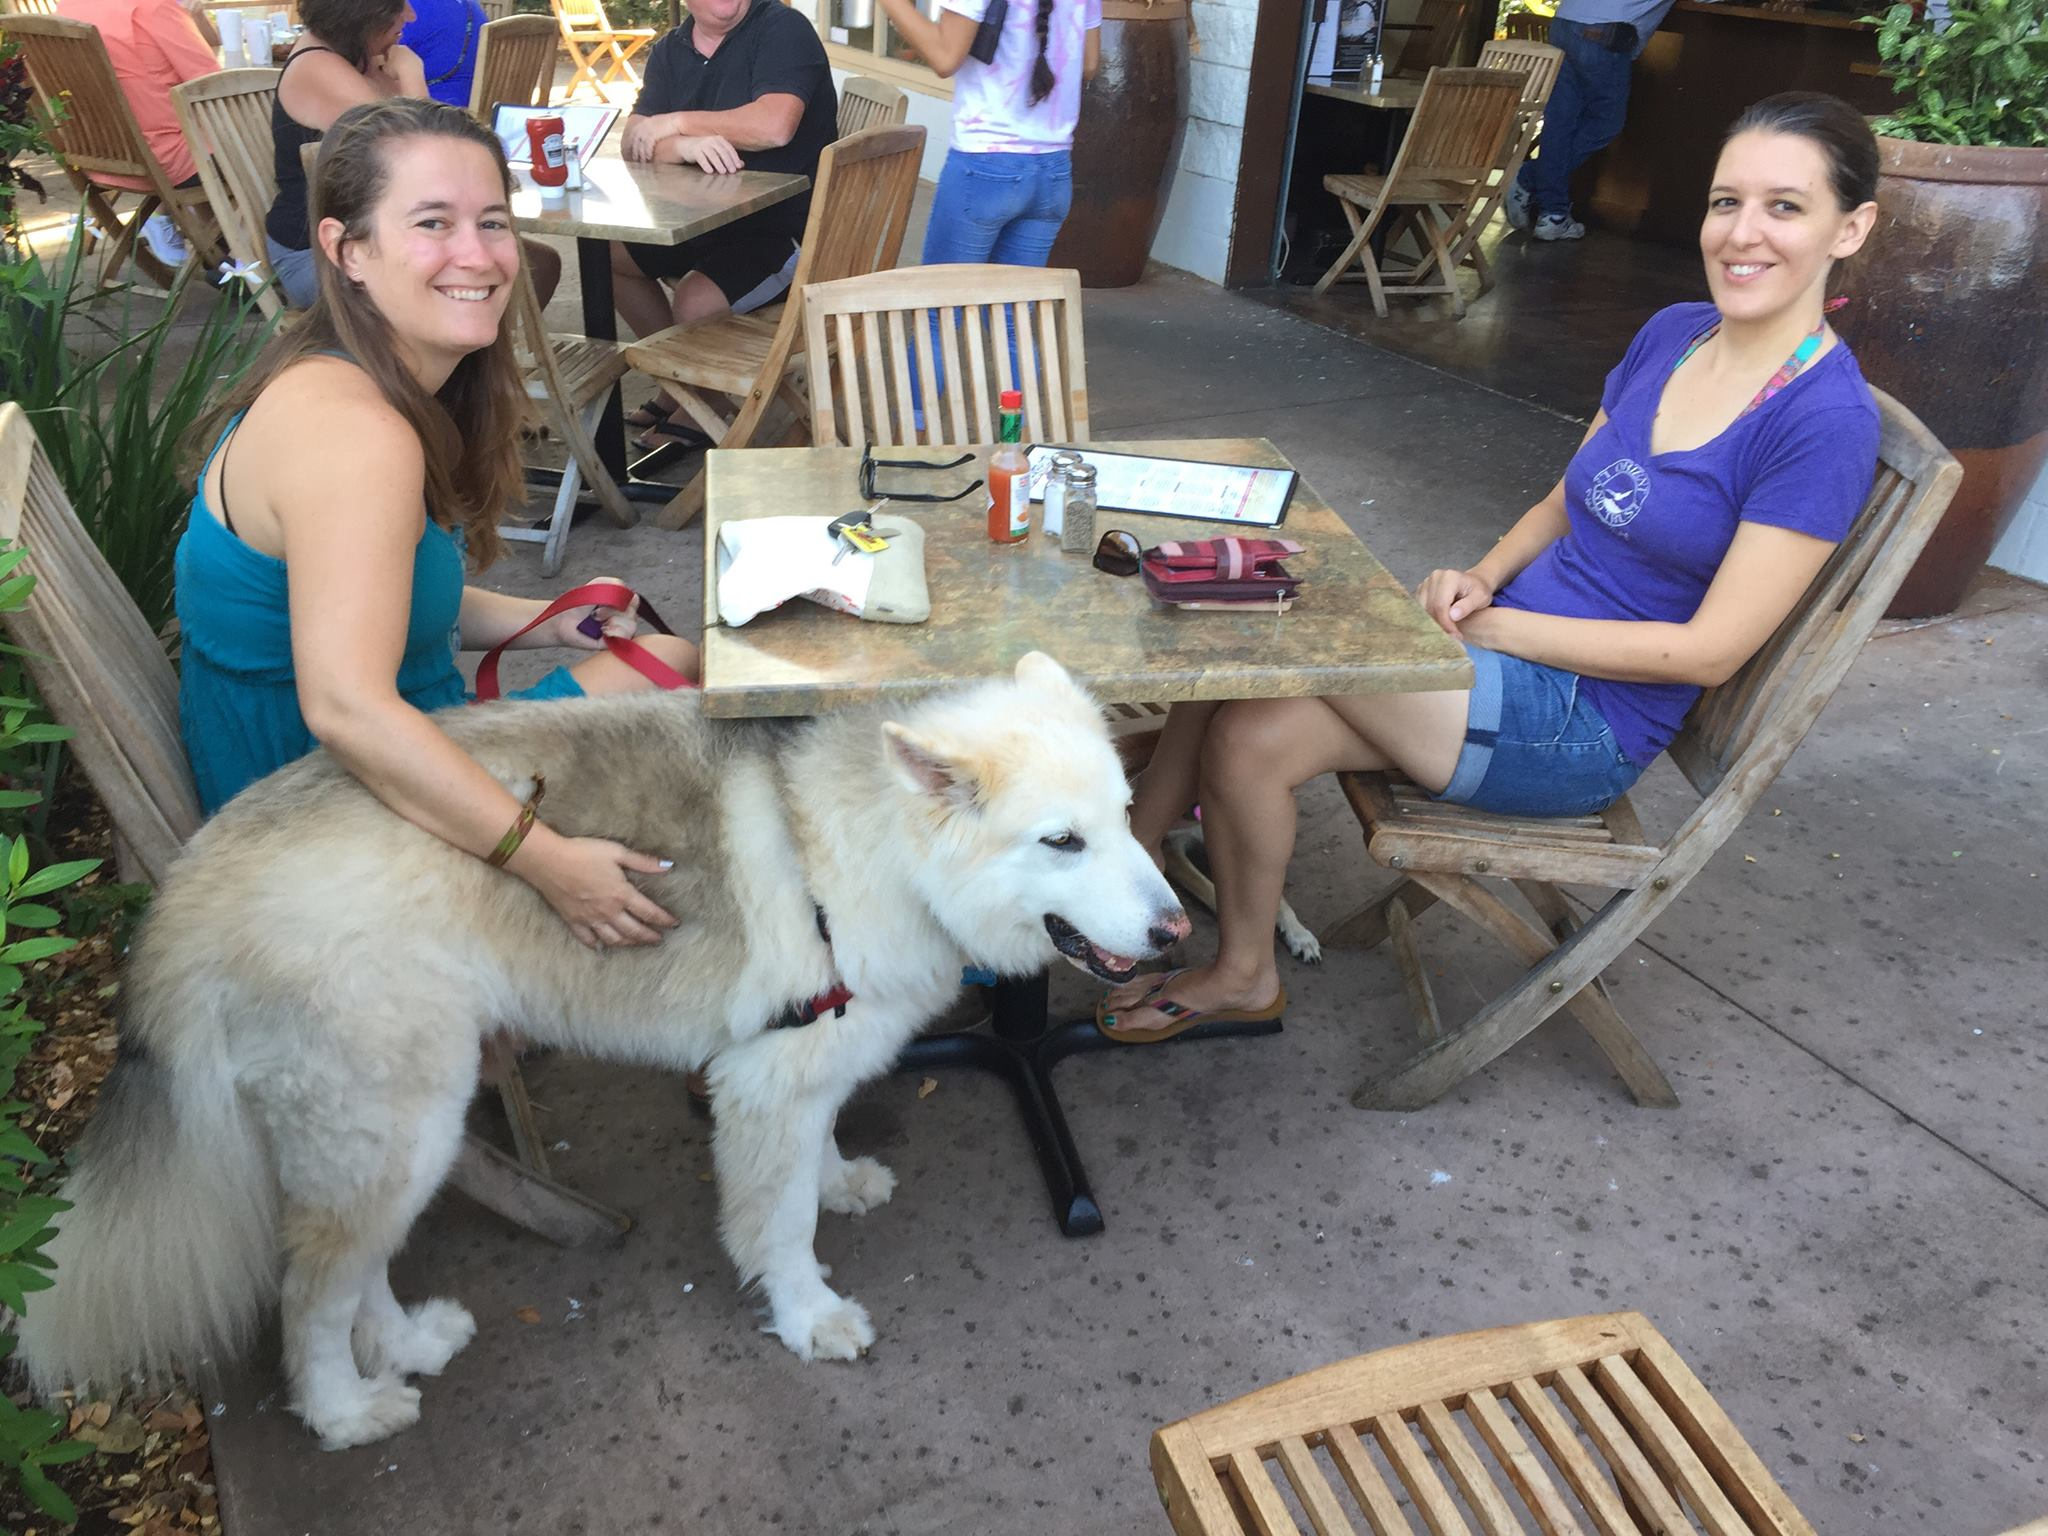 Waikoloa Village resident, Sara Jane, frequently brings her two dogs to Island Lava Java.